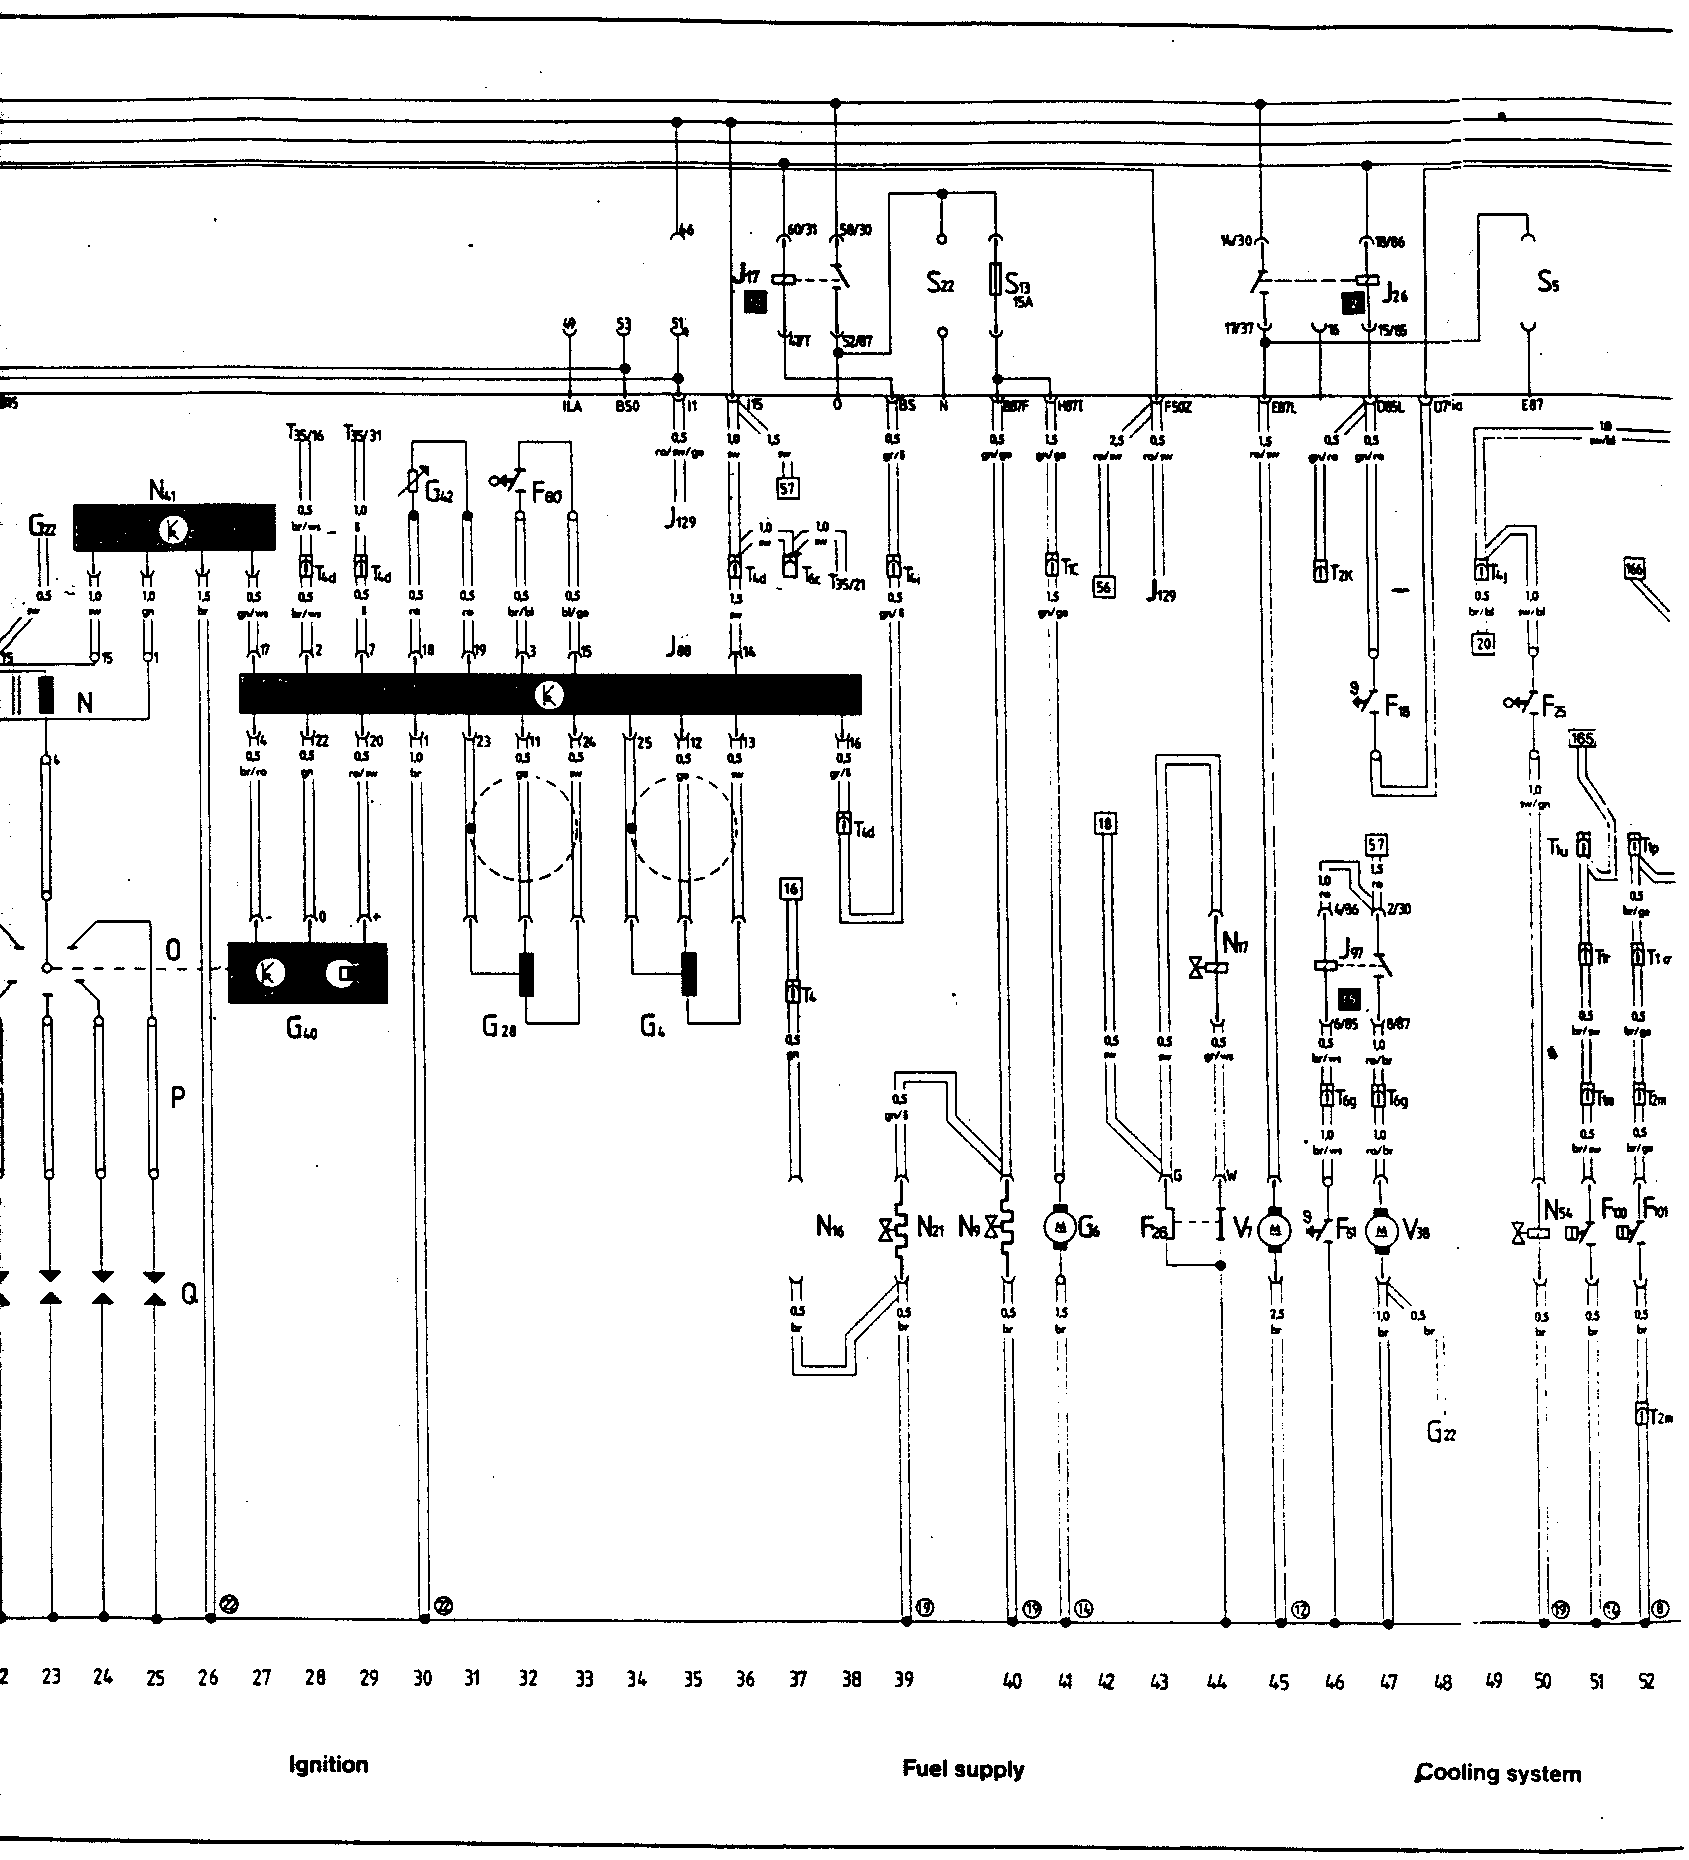 Diagram 17 - Main wiring Diagram Tracks 23-52